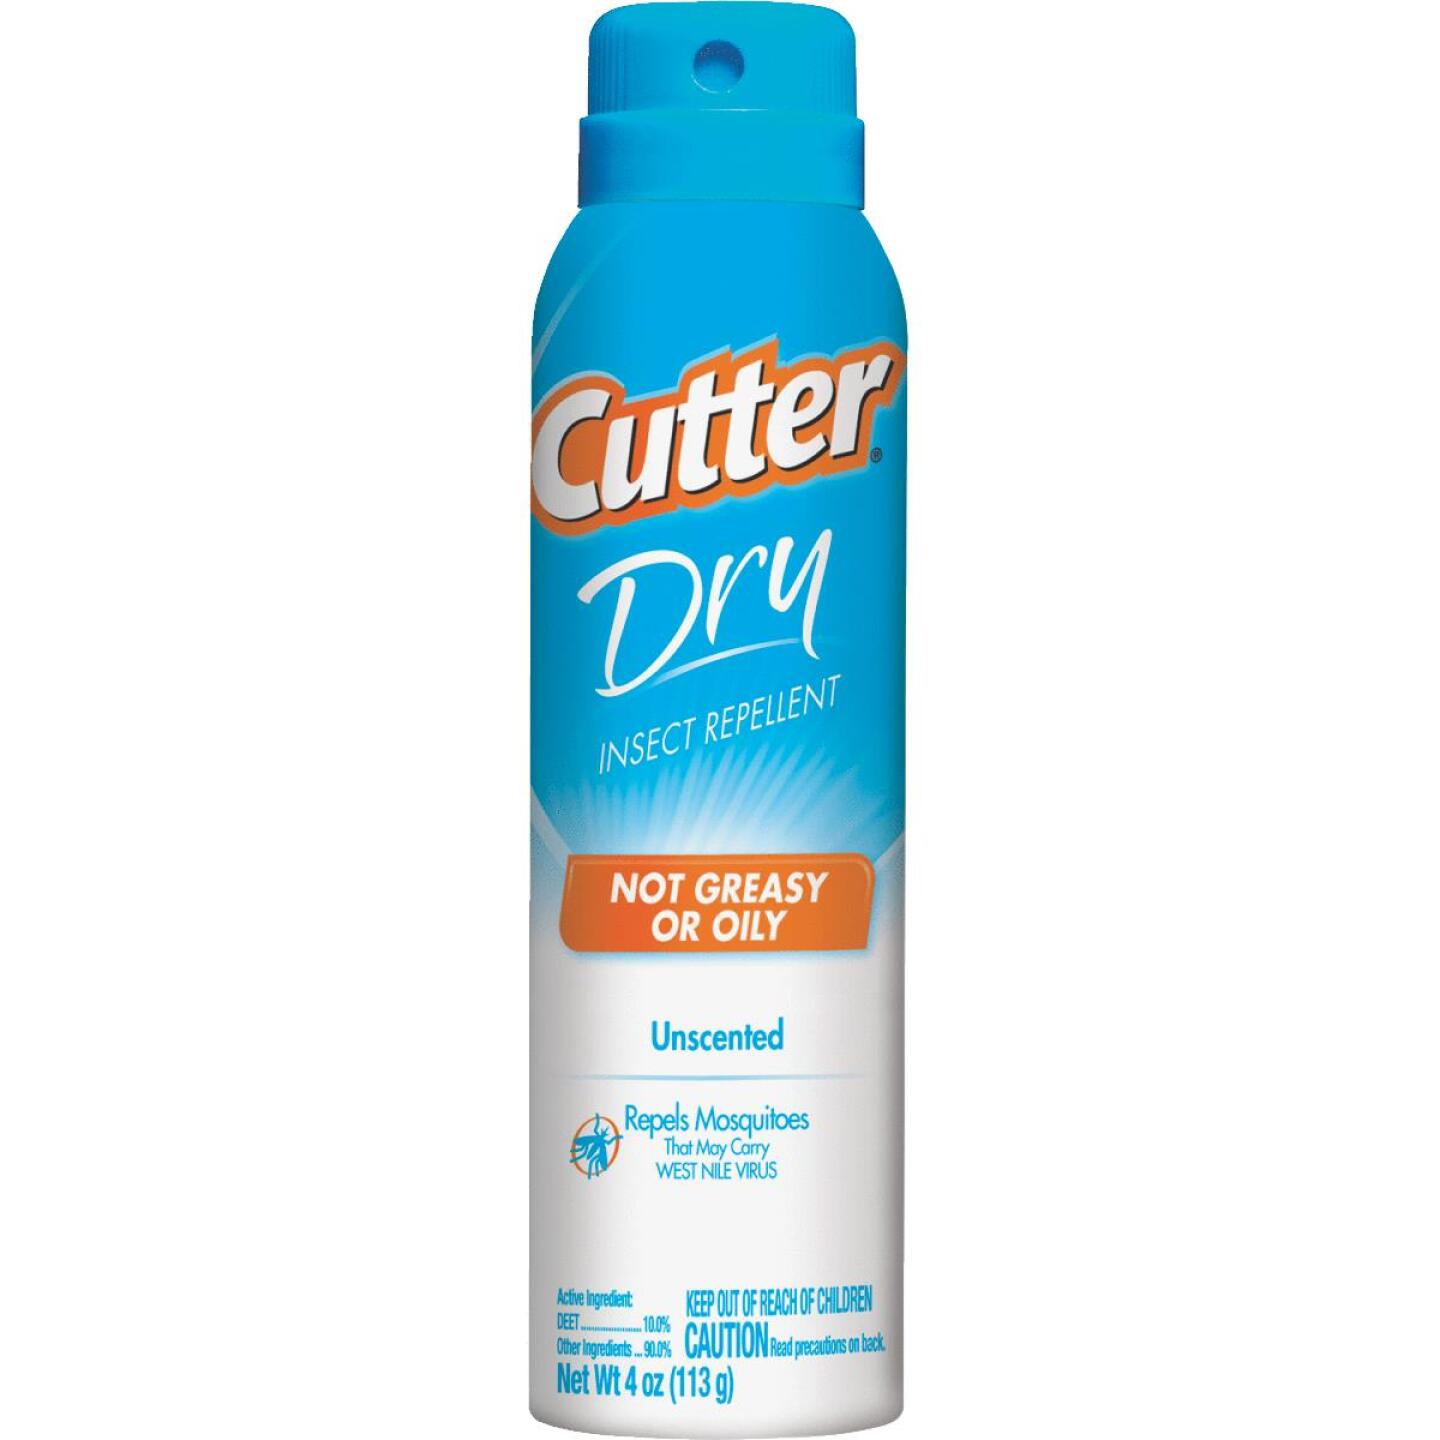 Cutter Dry 4 Oz. Insect Repellent Aerosol Spray Image 1